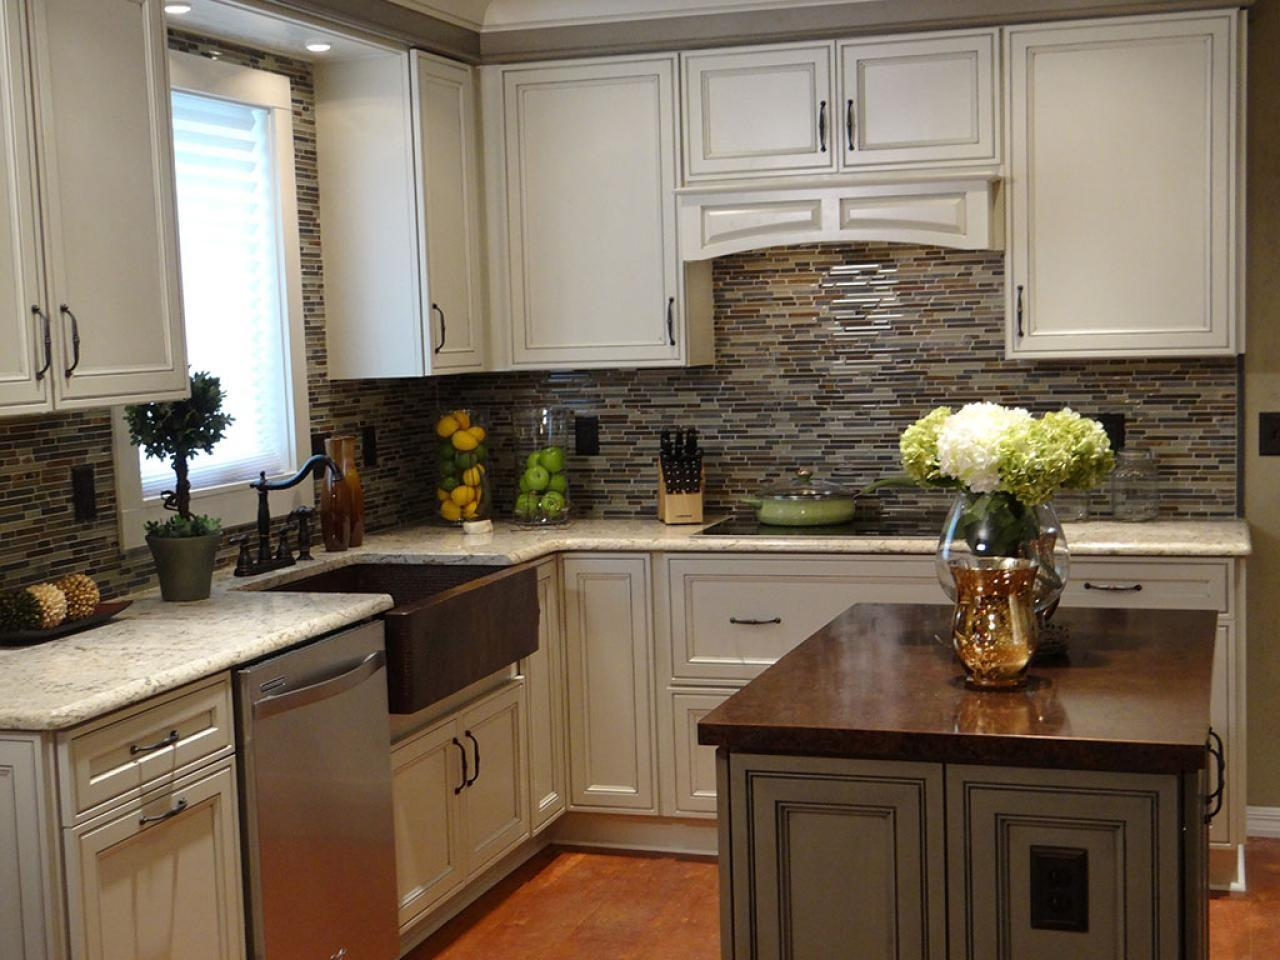 Compact Appliances Tiny Kitchens Decorating